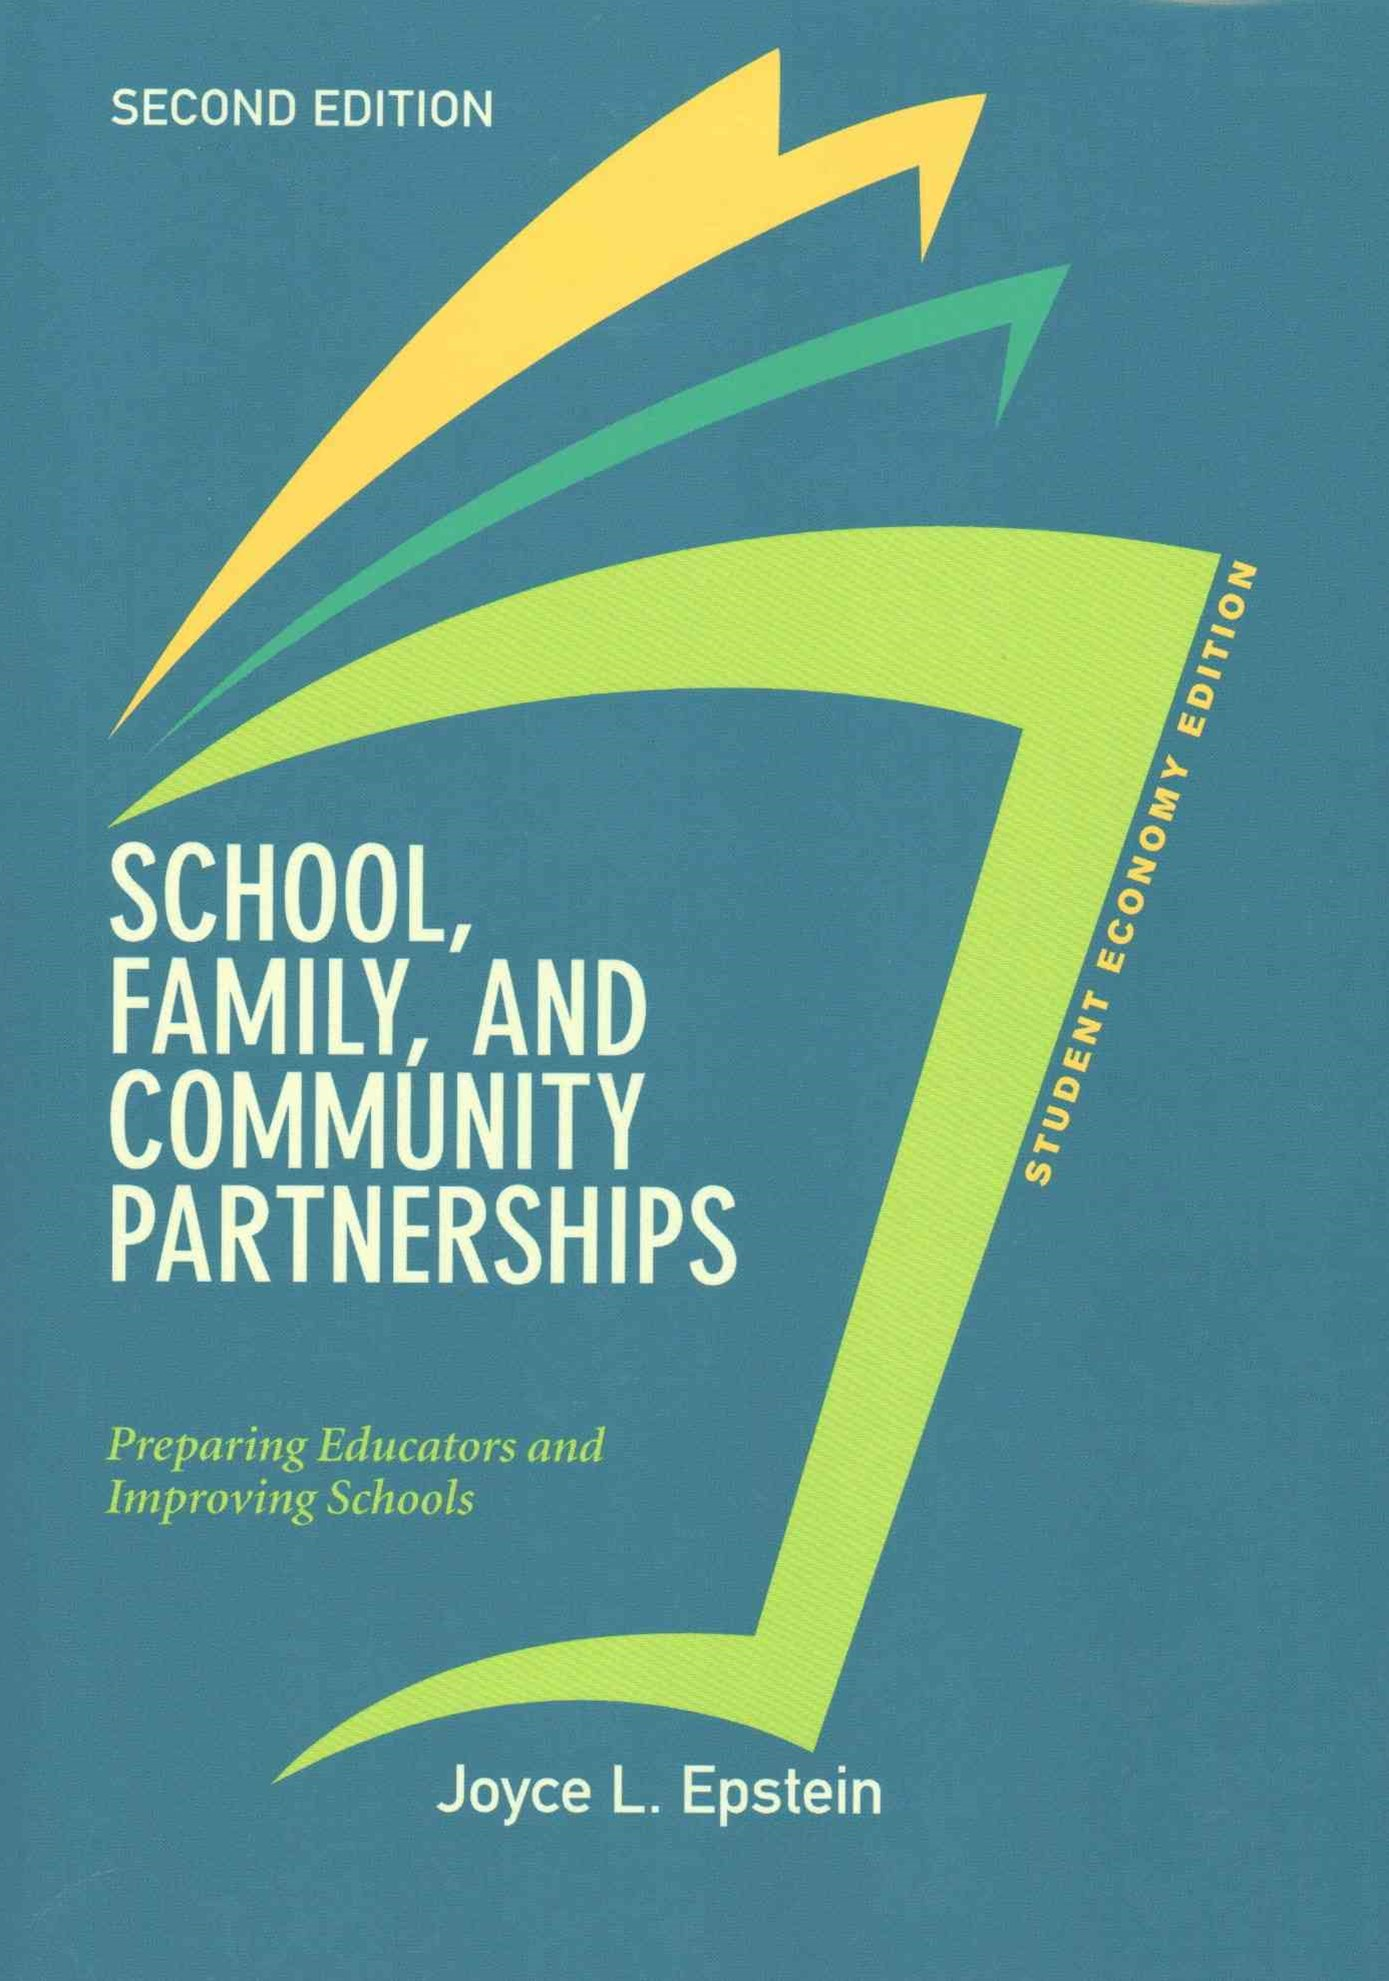 School, Family, and Community Partnerships, Student Economy Edition